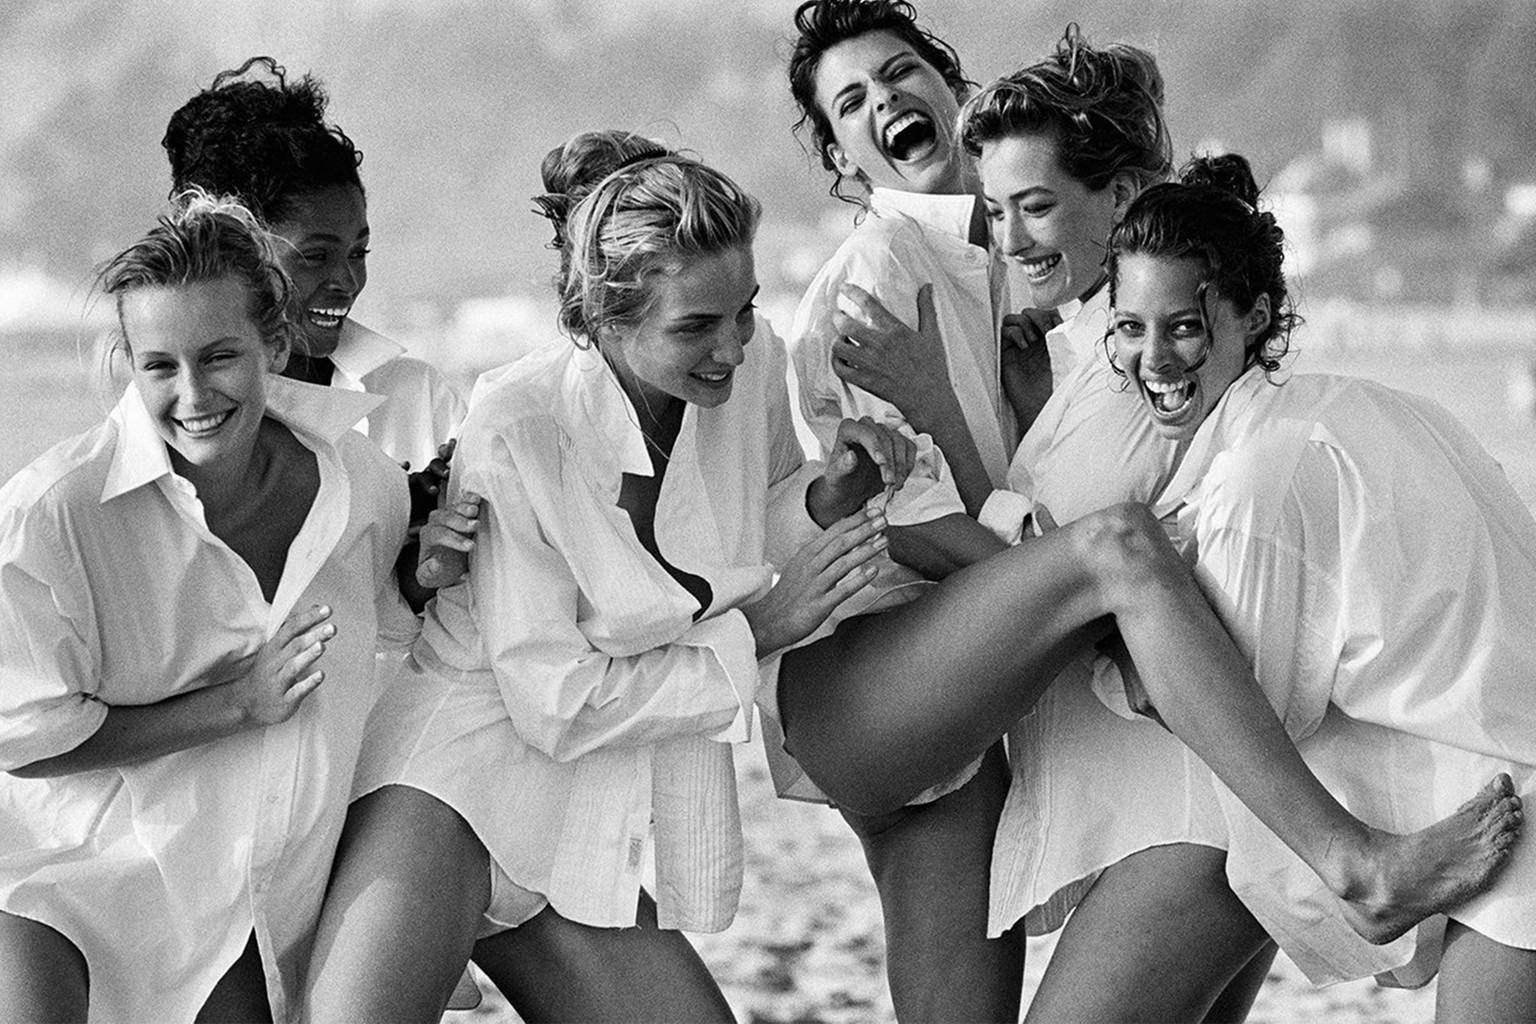 Group of girls laughing in white button-downs.